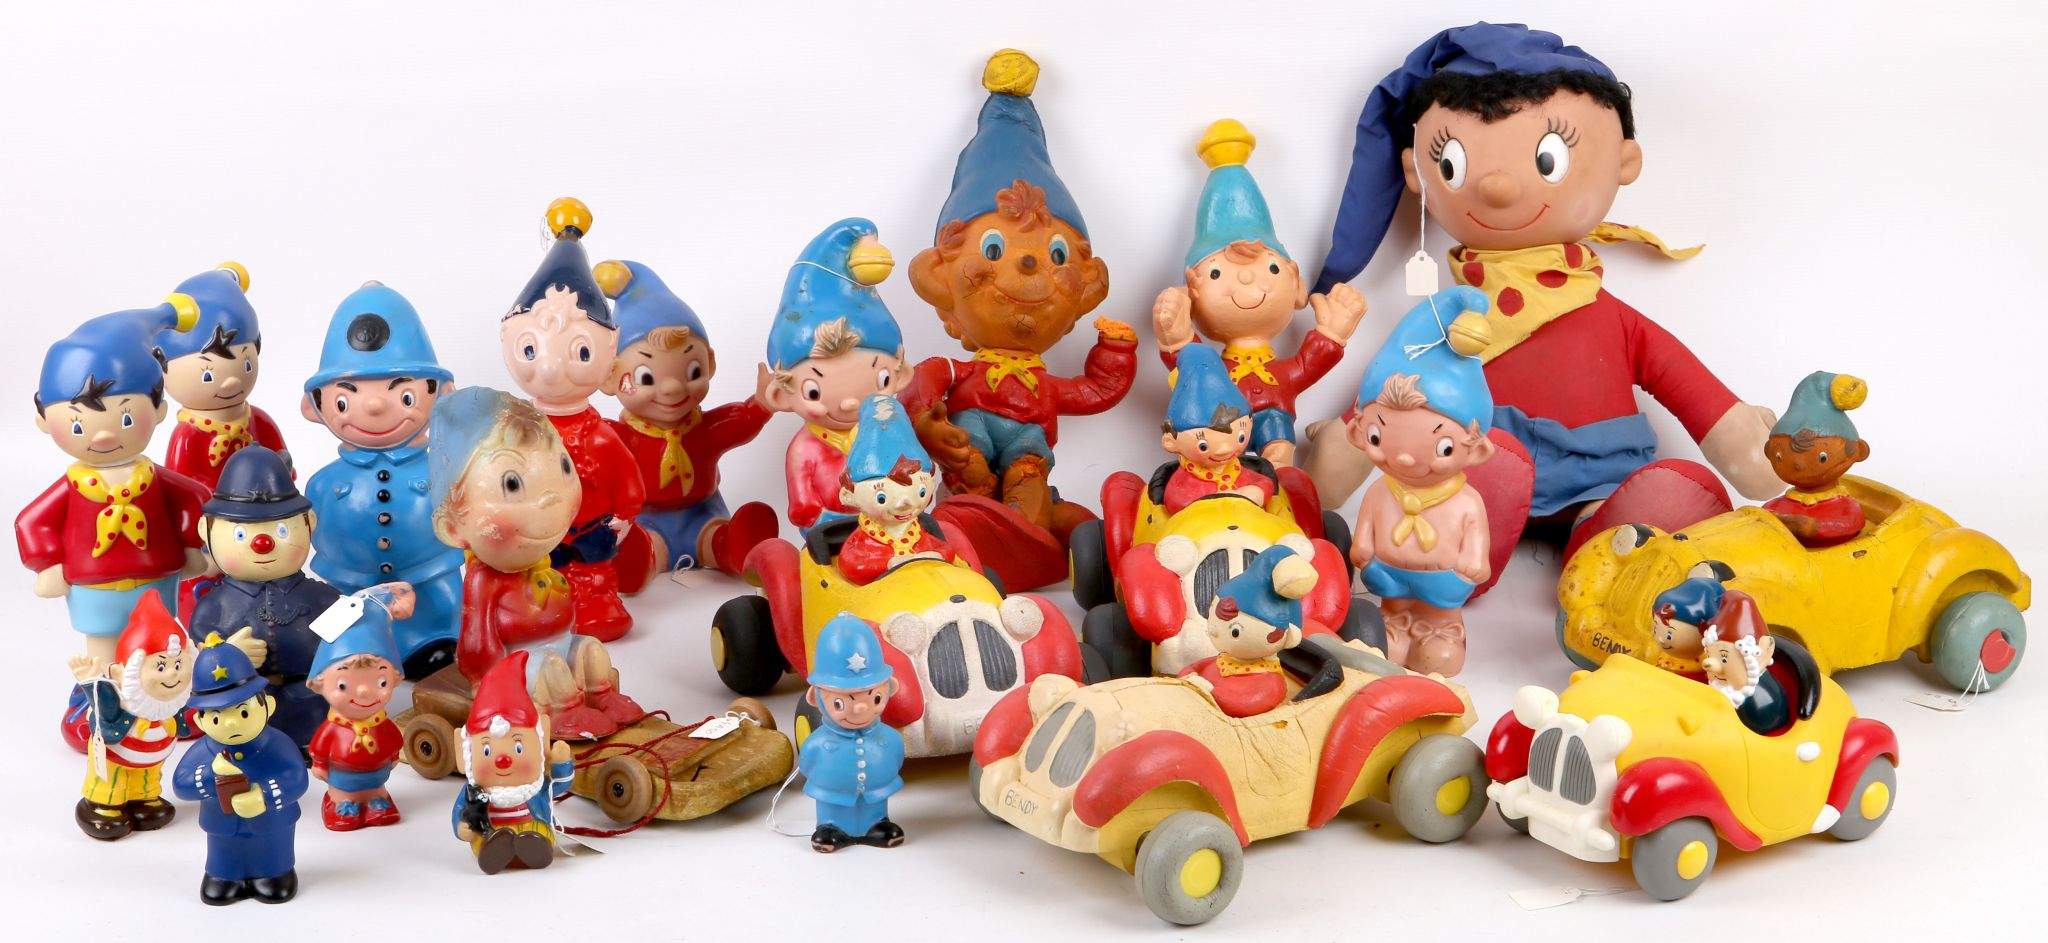 A collection of Noddy Big Ears and other characters of Bendy Toys